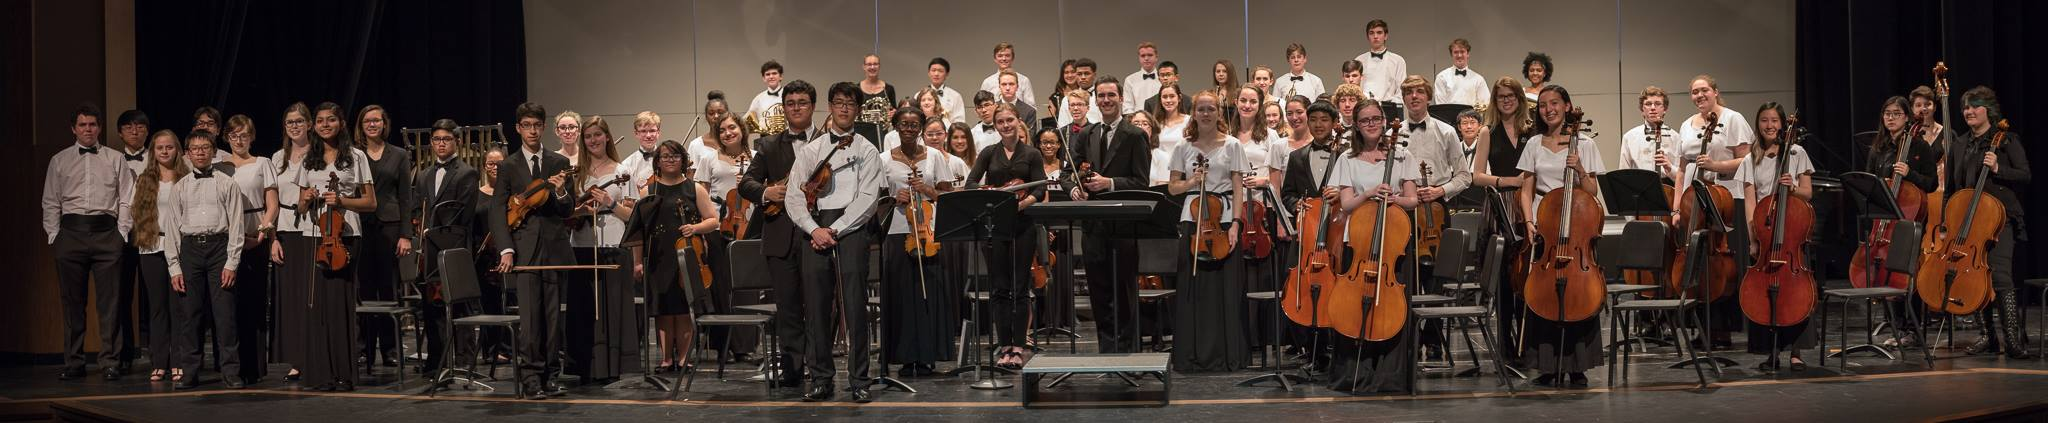 Temecula Valley Youth Symphony and Chamblee H.S. Orchestra from Georgia